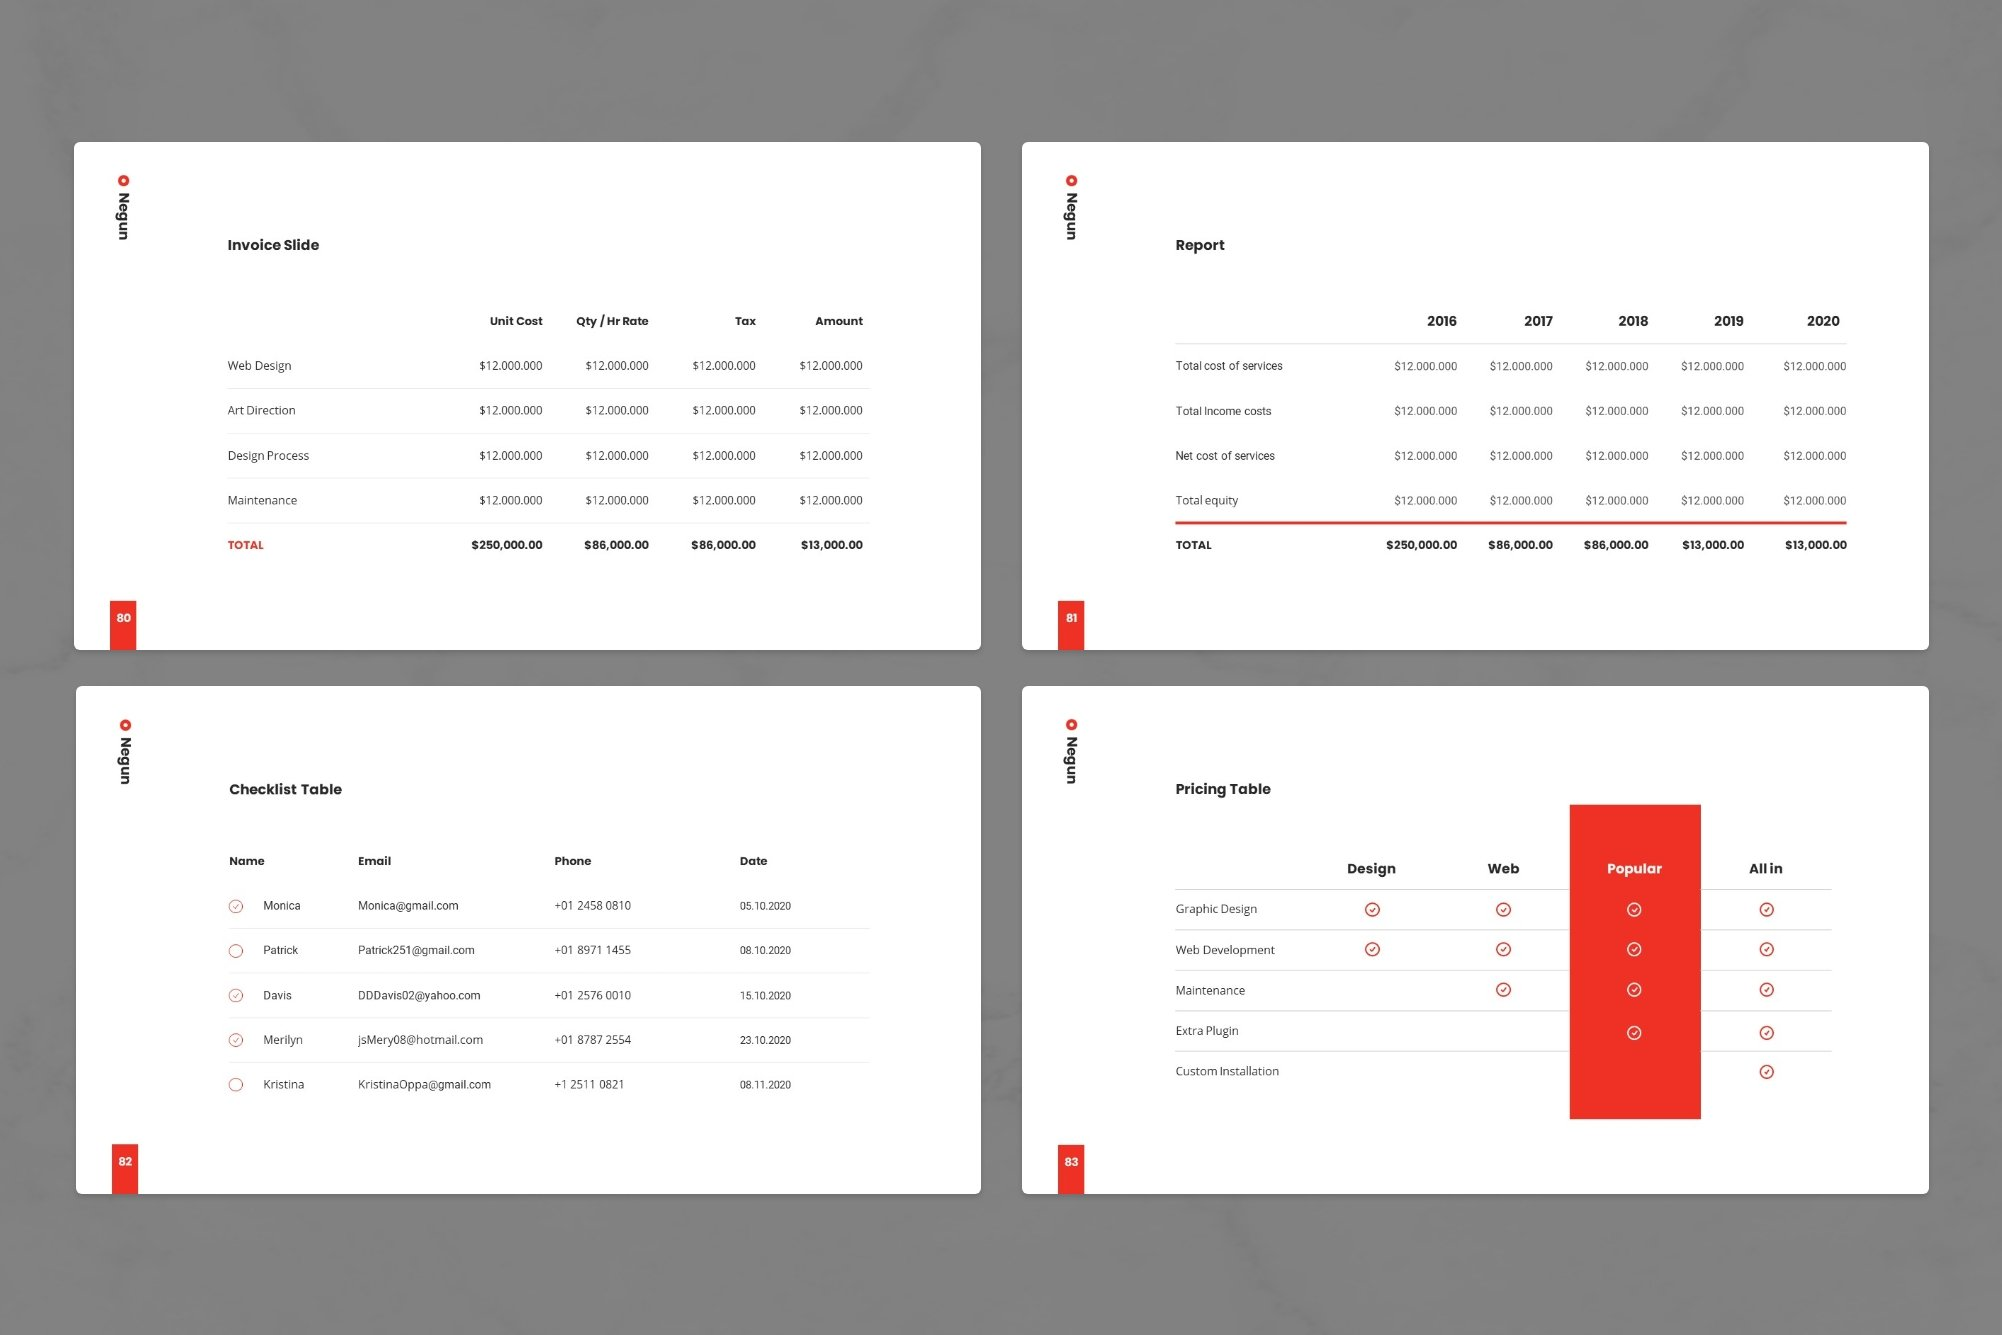 The commercial part of the template. Here are tables of pricing, budget, investment, etc.